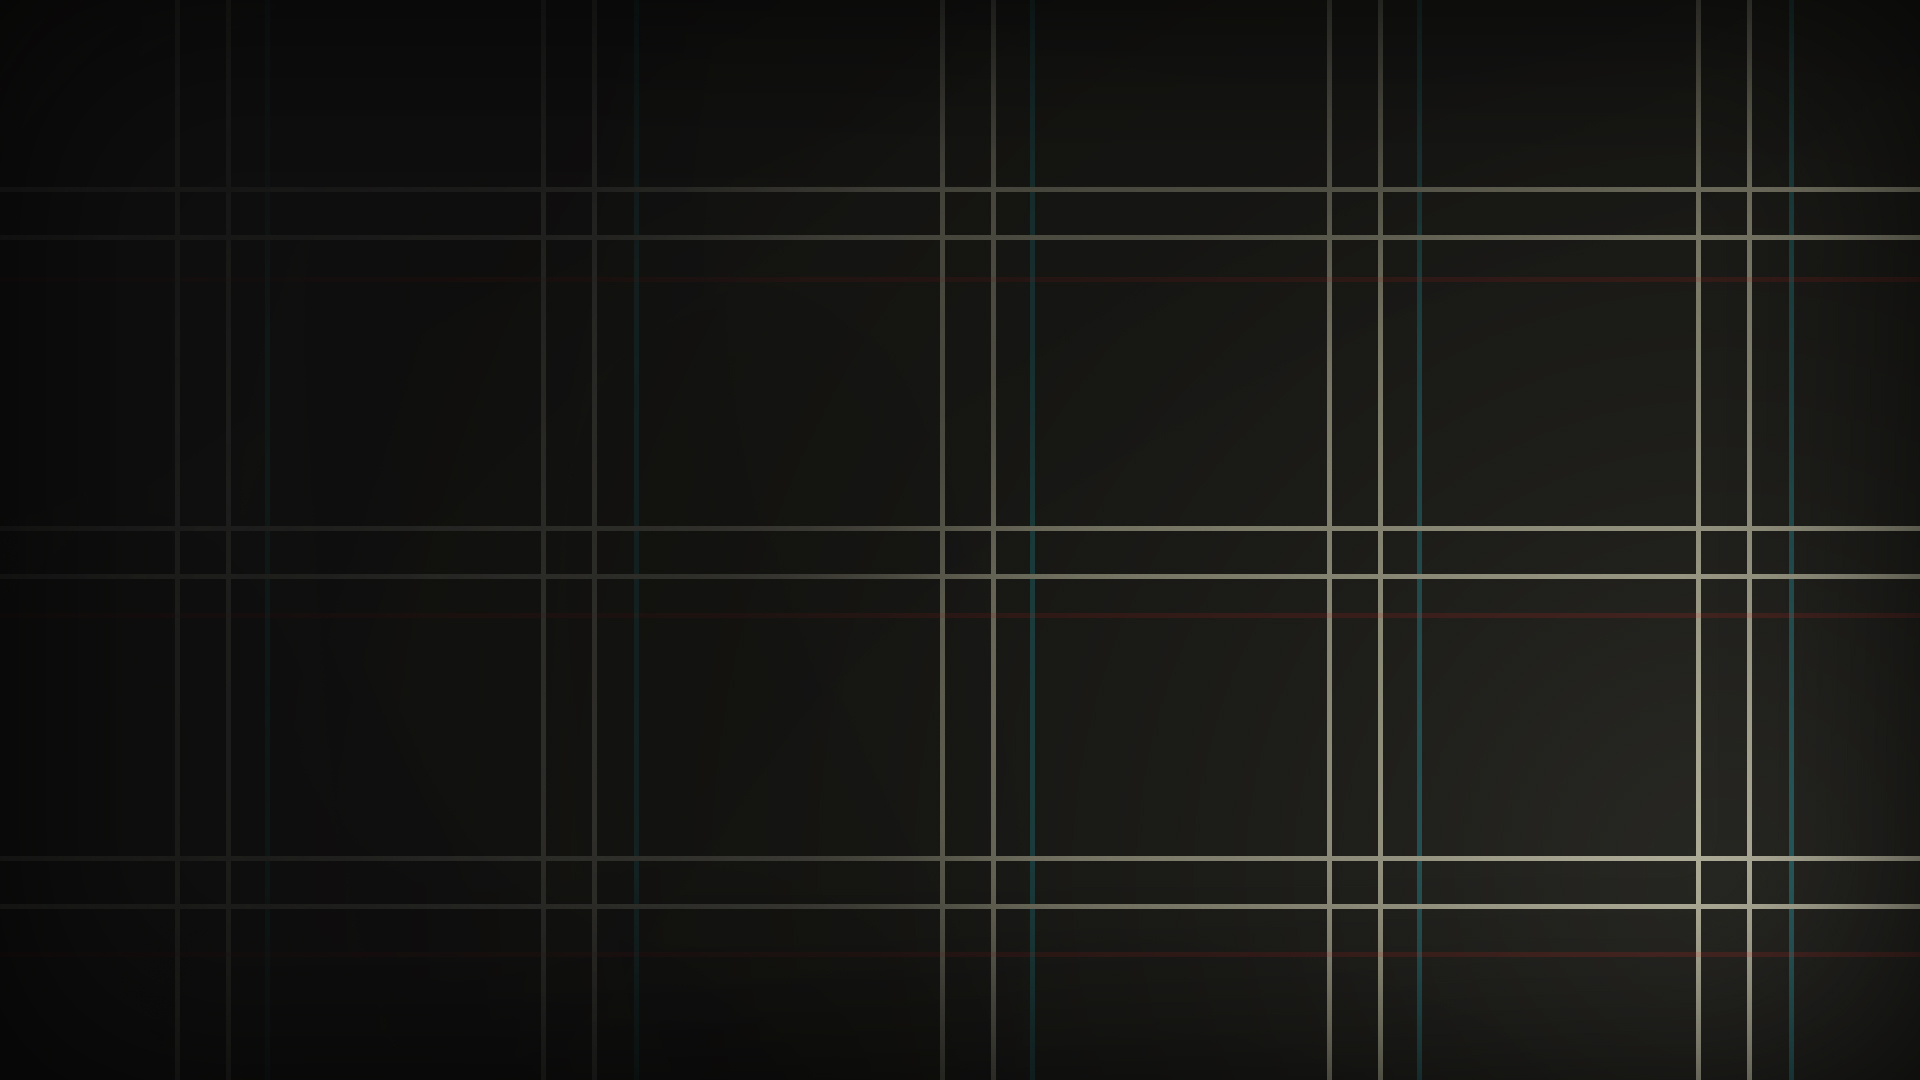 Abstract Square 1920x1080